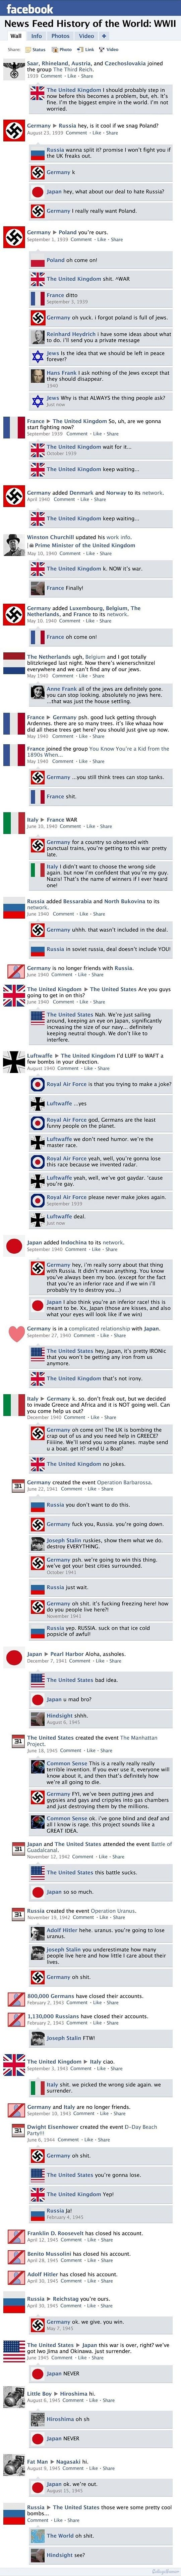 If countries had Facebook during WWII…  this is actually an interesting idea to get students thinking about history